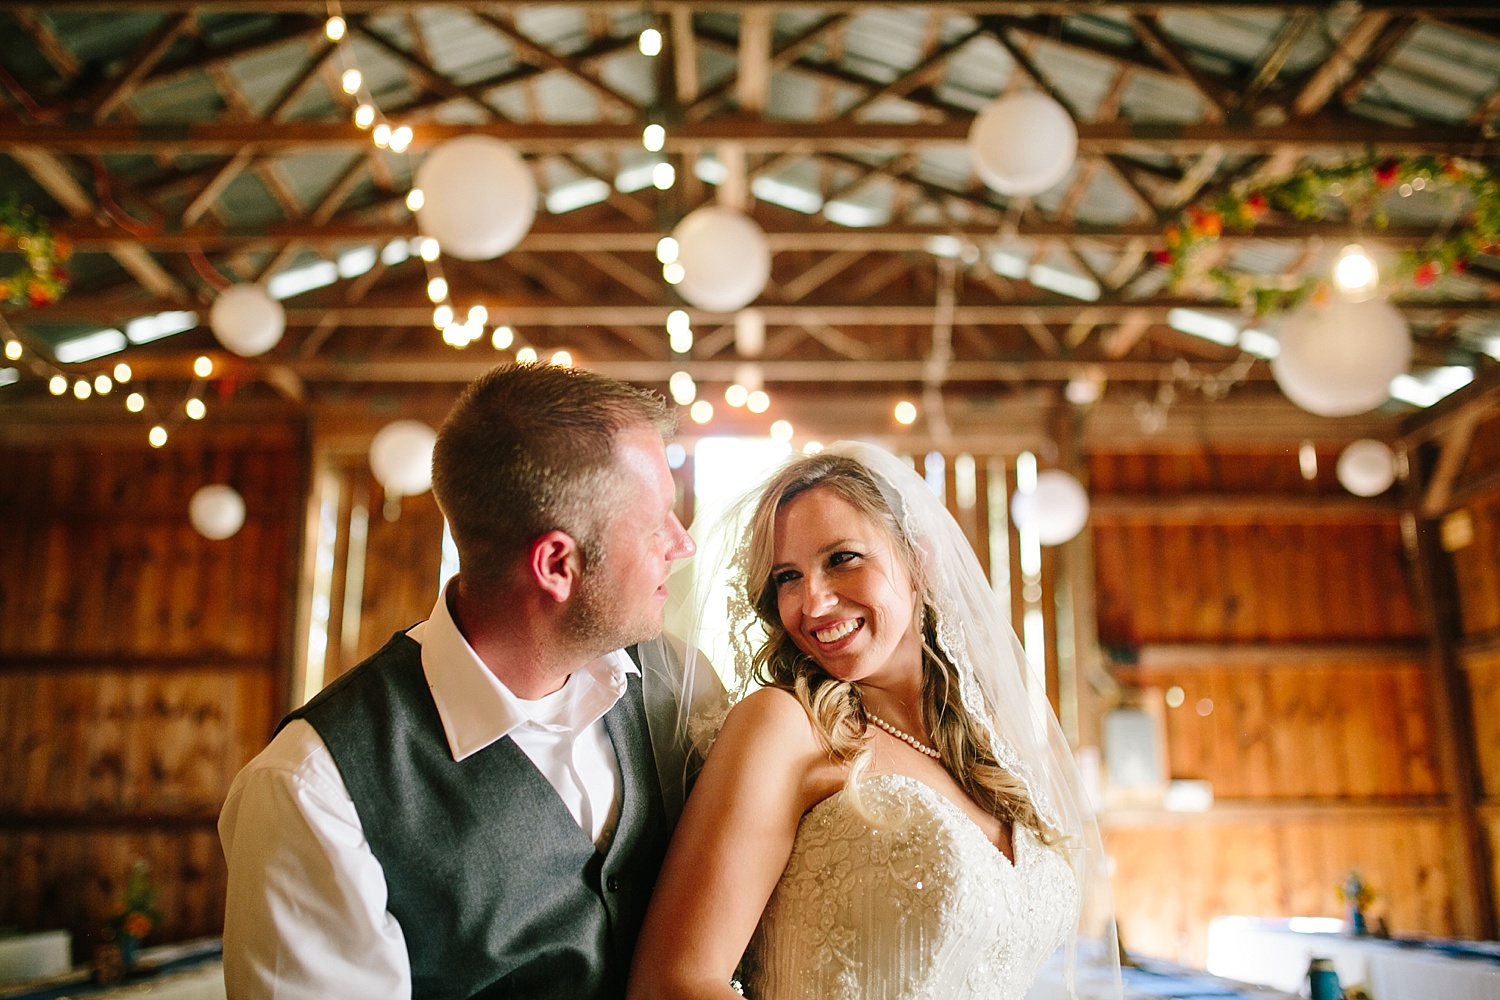 jennyryan_newbeginnings_farmstead_upstatenewyork_wedding_image074.jpg